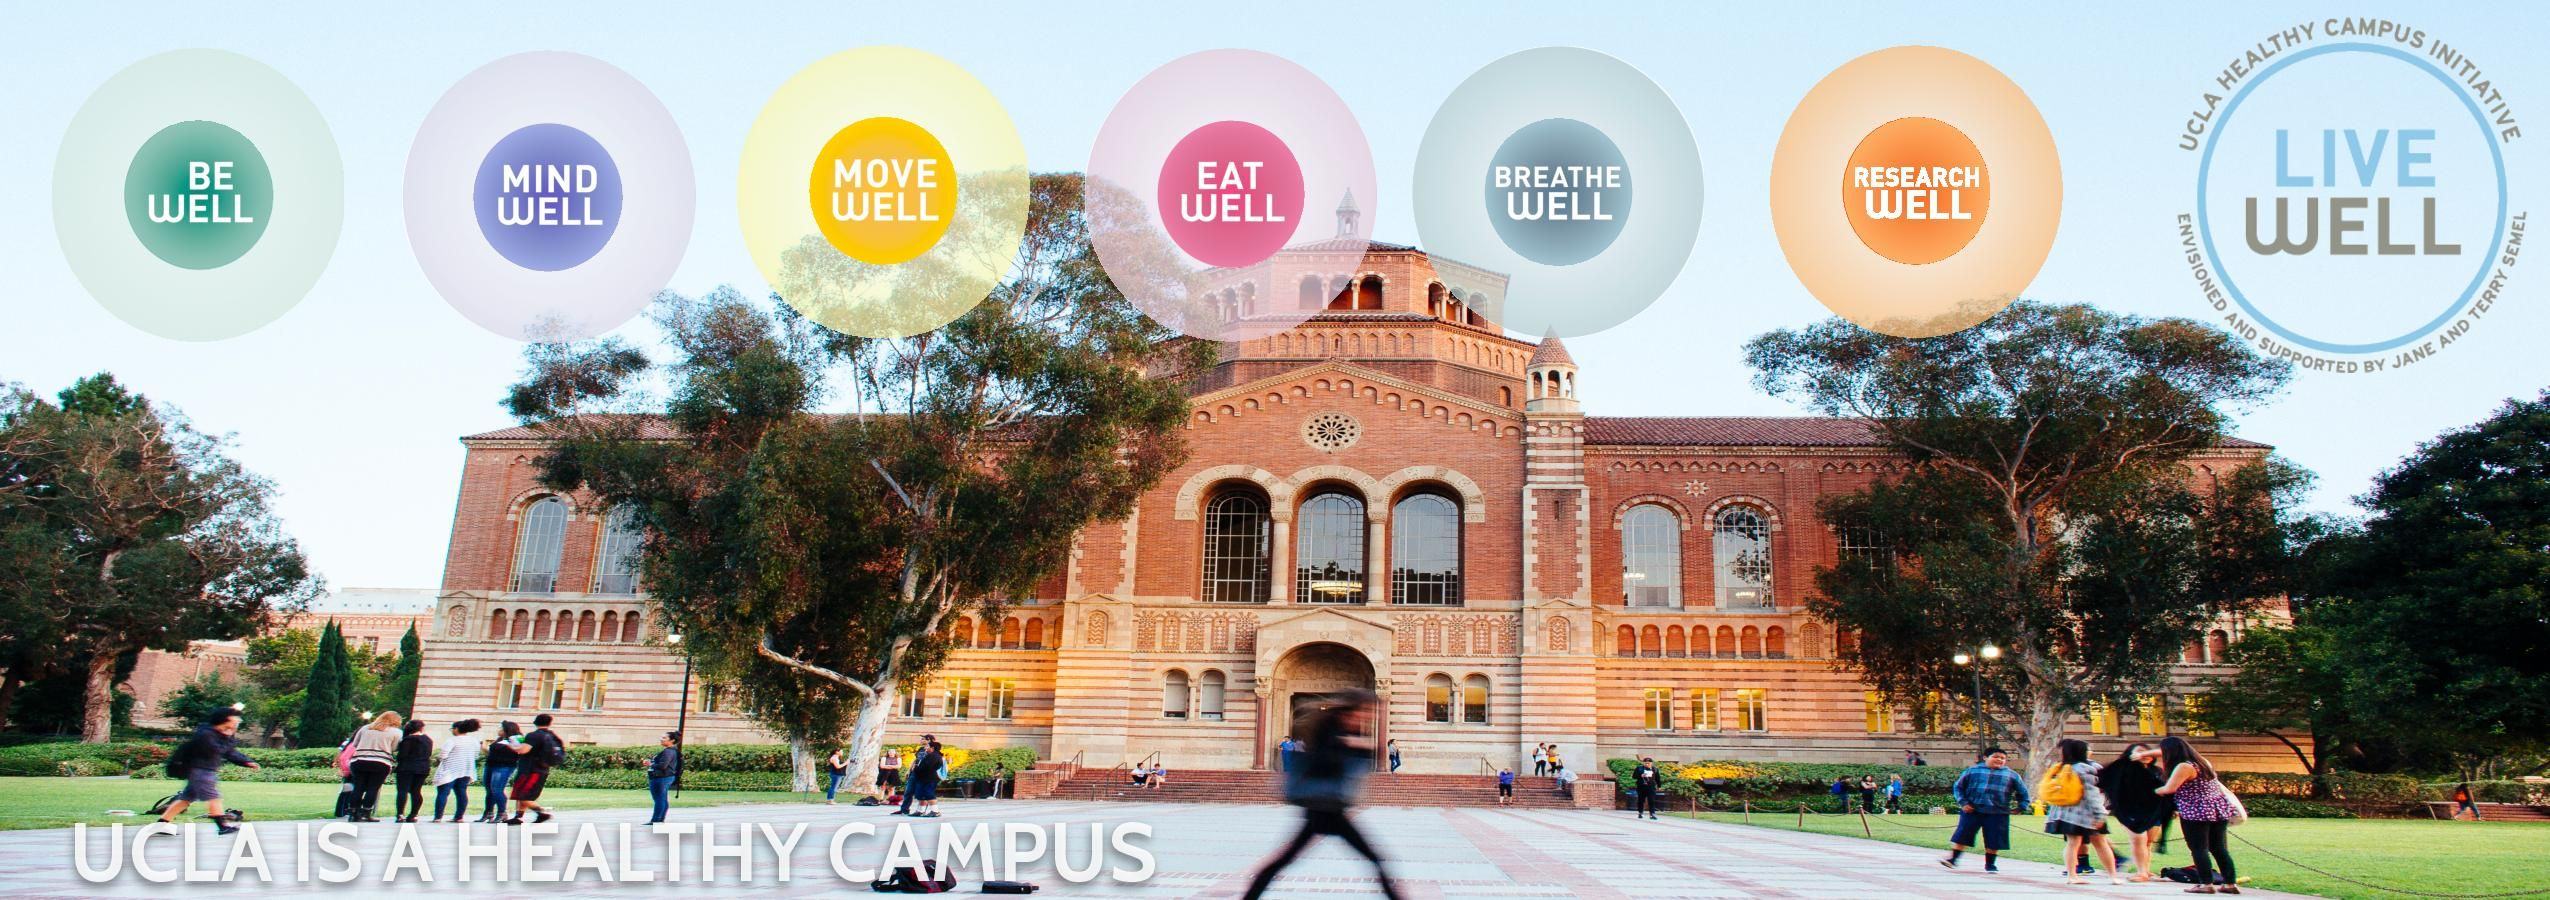 What's New with the Healthy Campus Initiative? UCLA Live